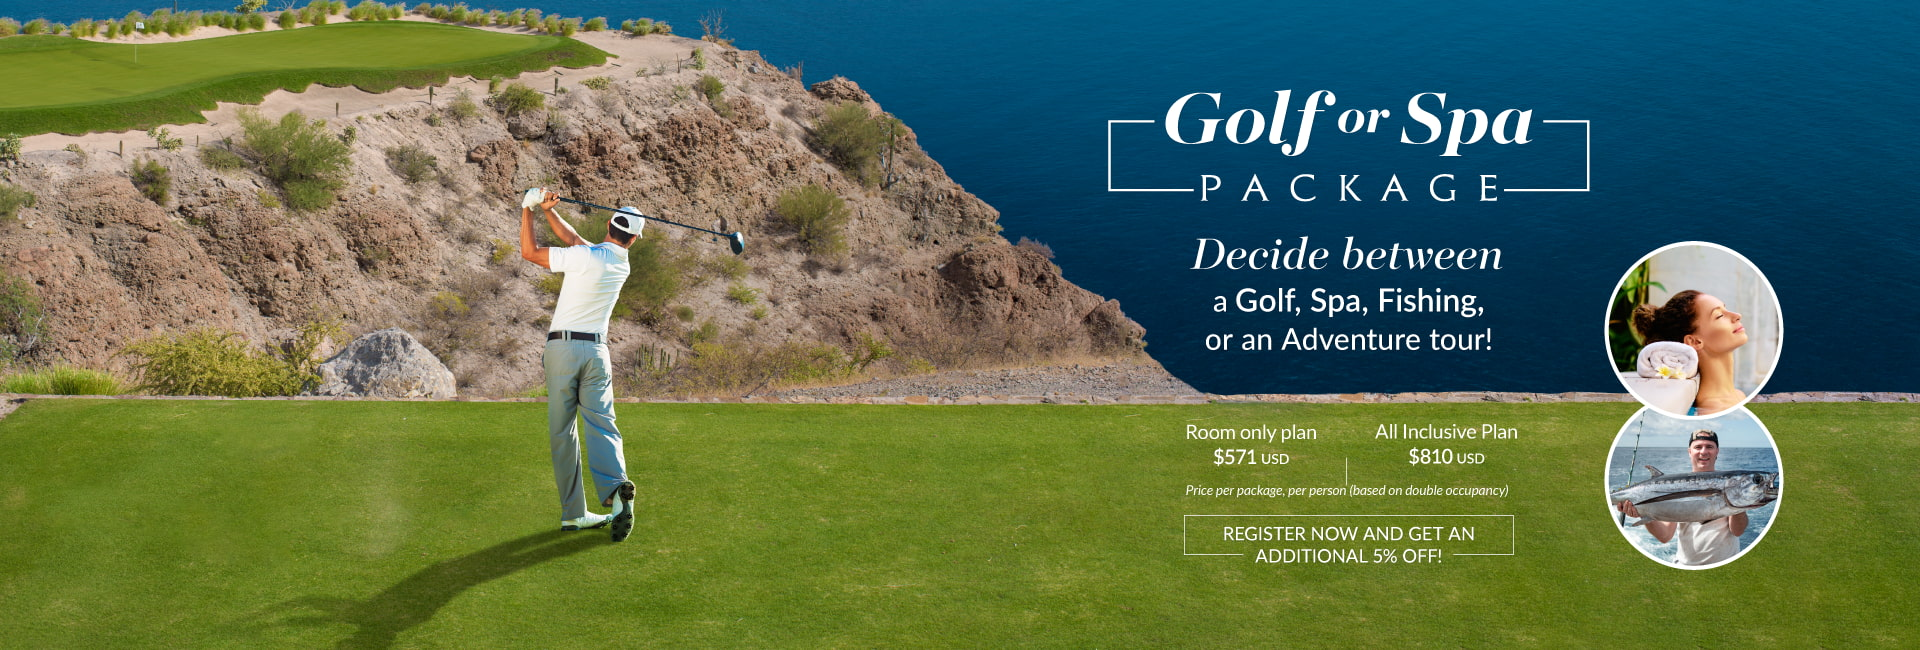 Golf or Spa package at tpc danzante bay